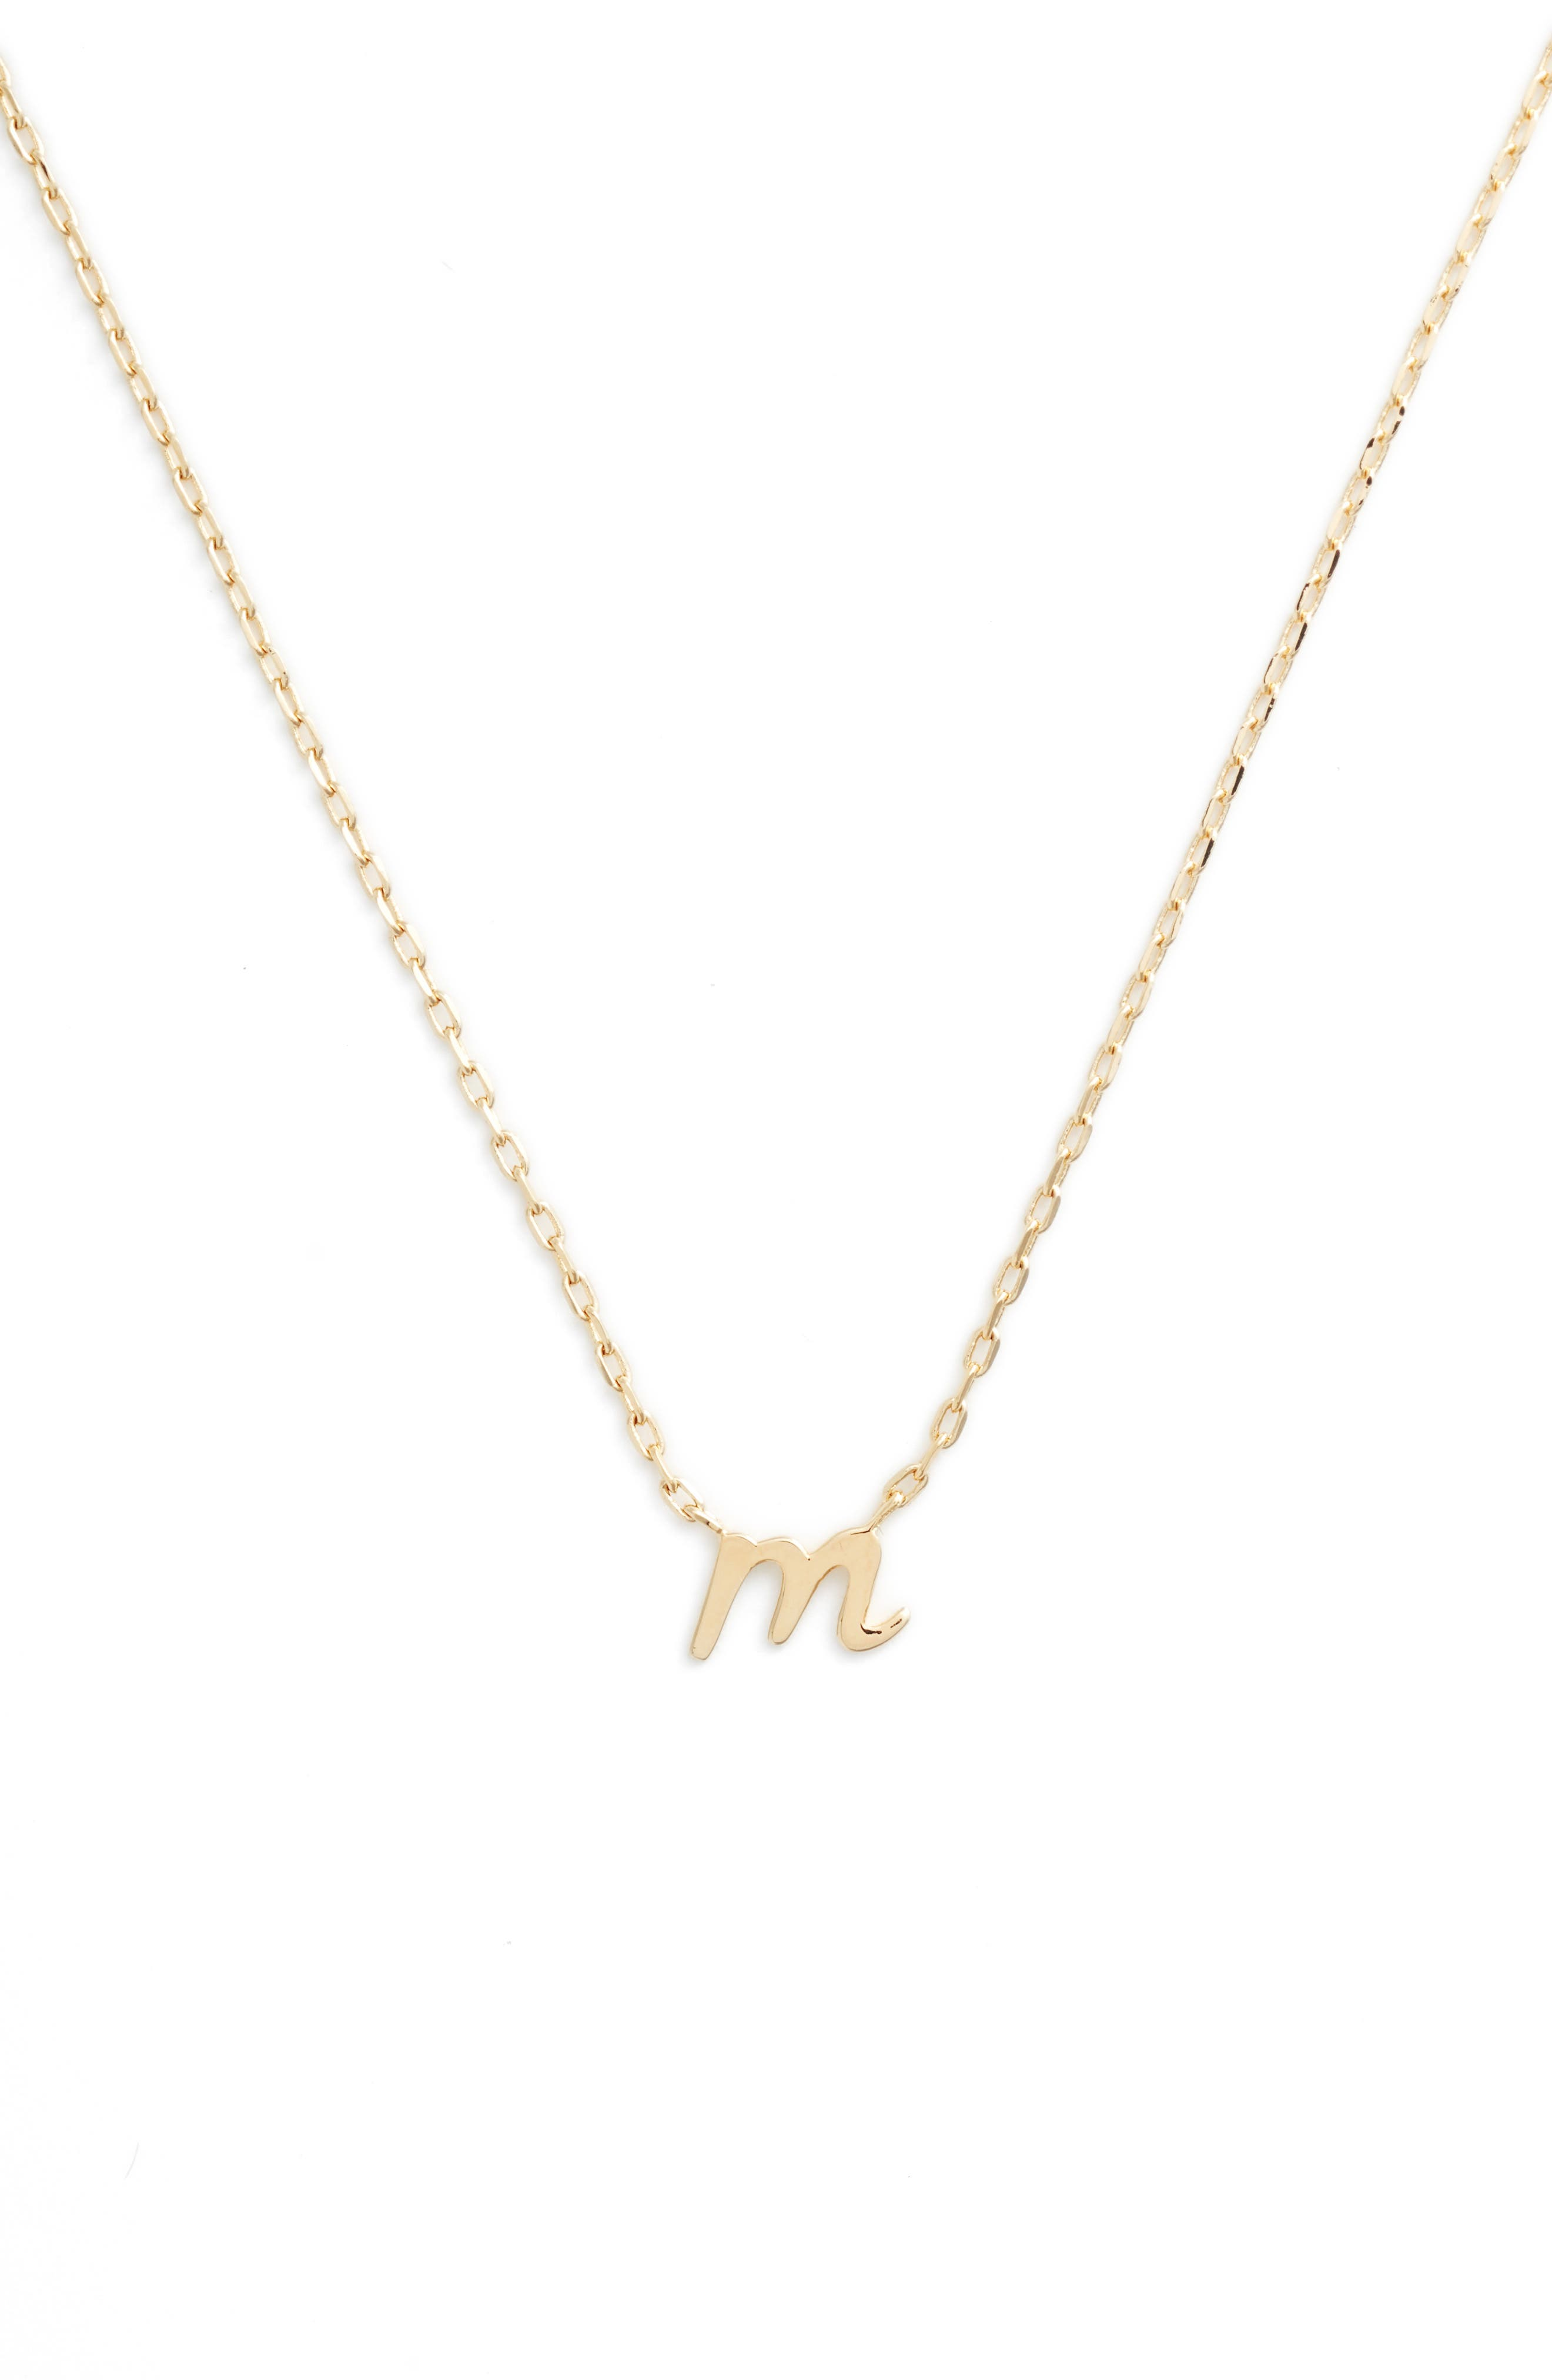 kate spade one in a million initial pendant necklace,                         Main,                         color, M-GOLD